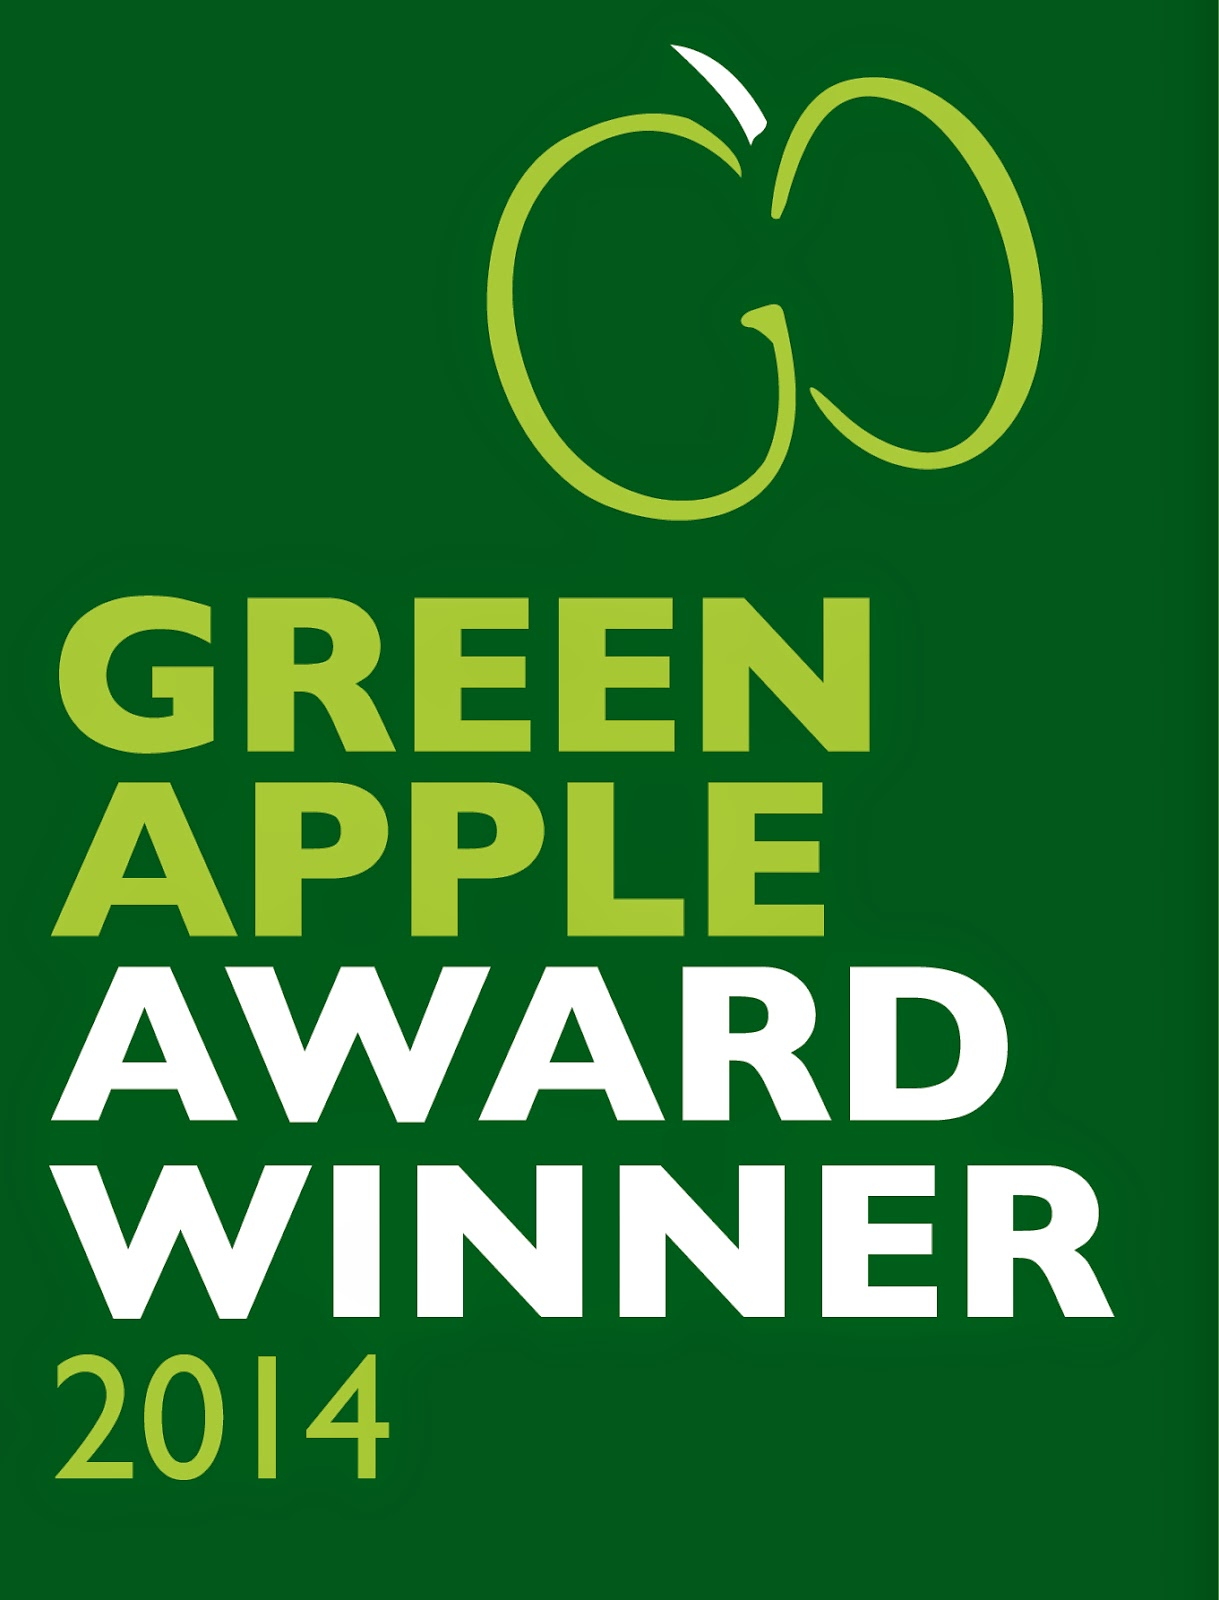 green apple award winner morclean 2014 houses of parliament